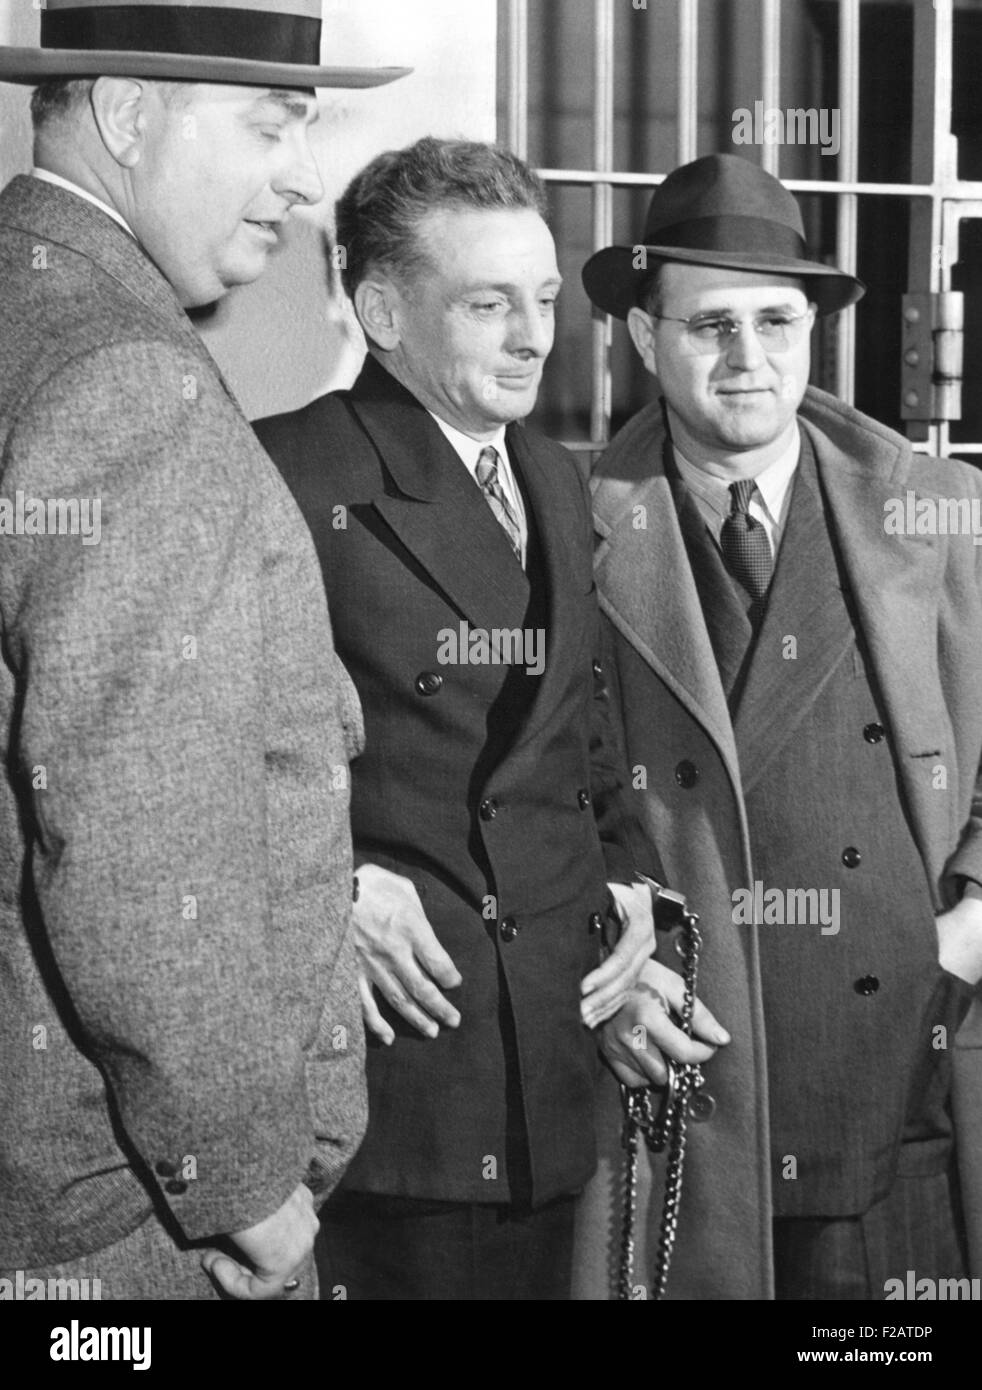 Roger Touly sought a writ of habeas corpus on Jan. 5, 1943. He claimed he was framed for the 1933 kidnapping of - Stock Image